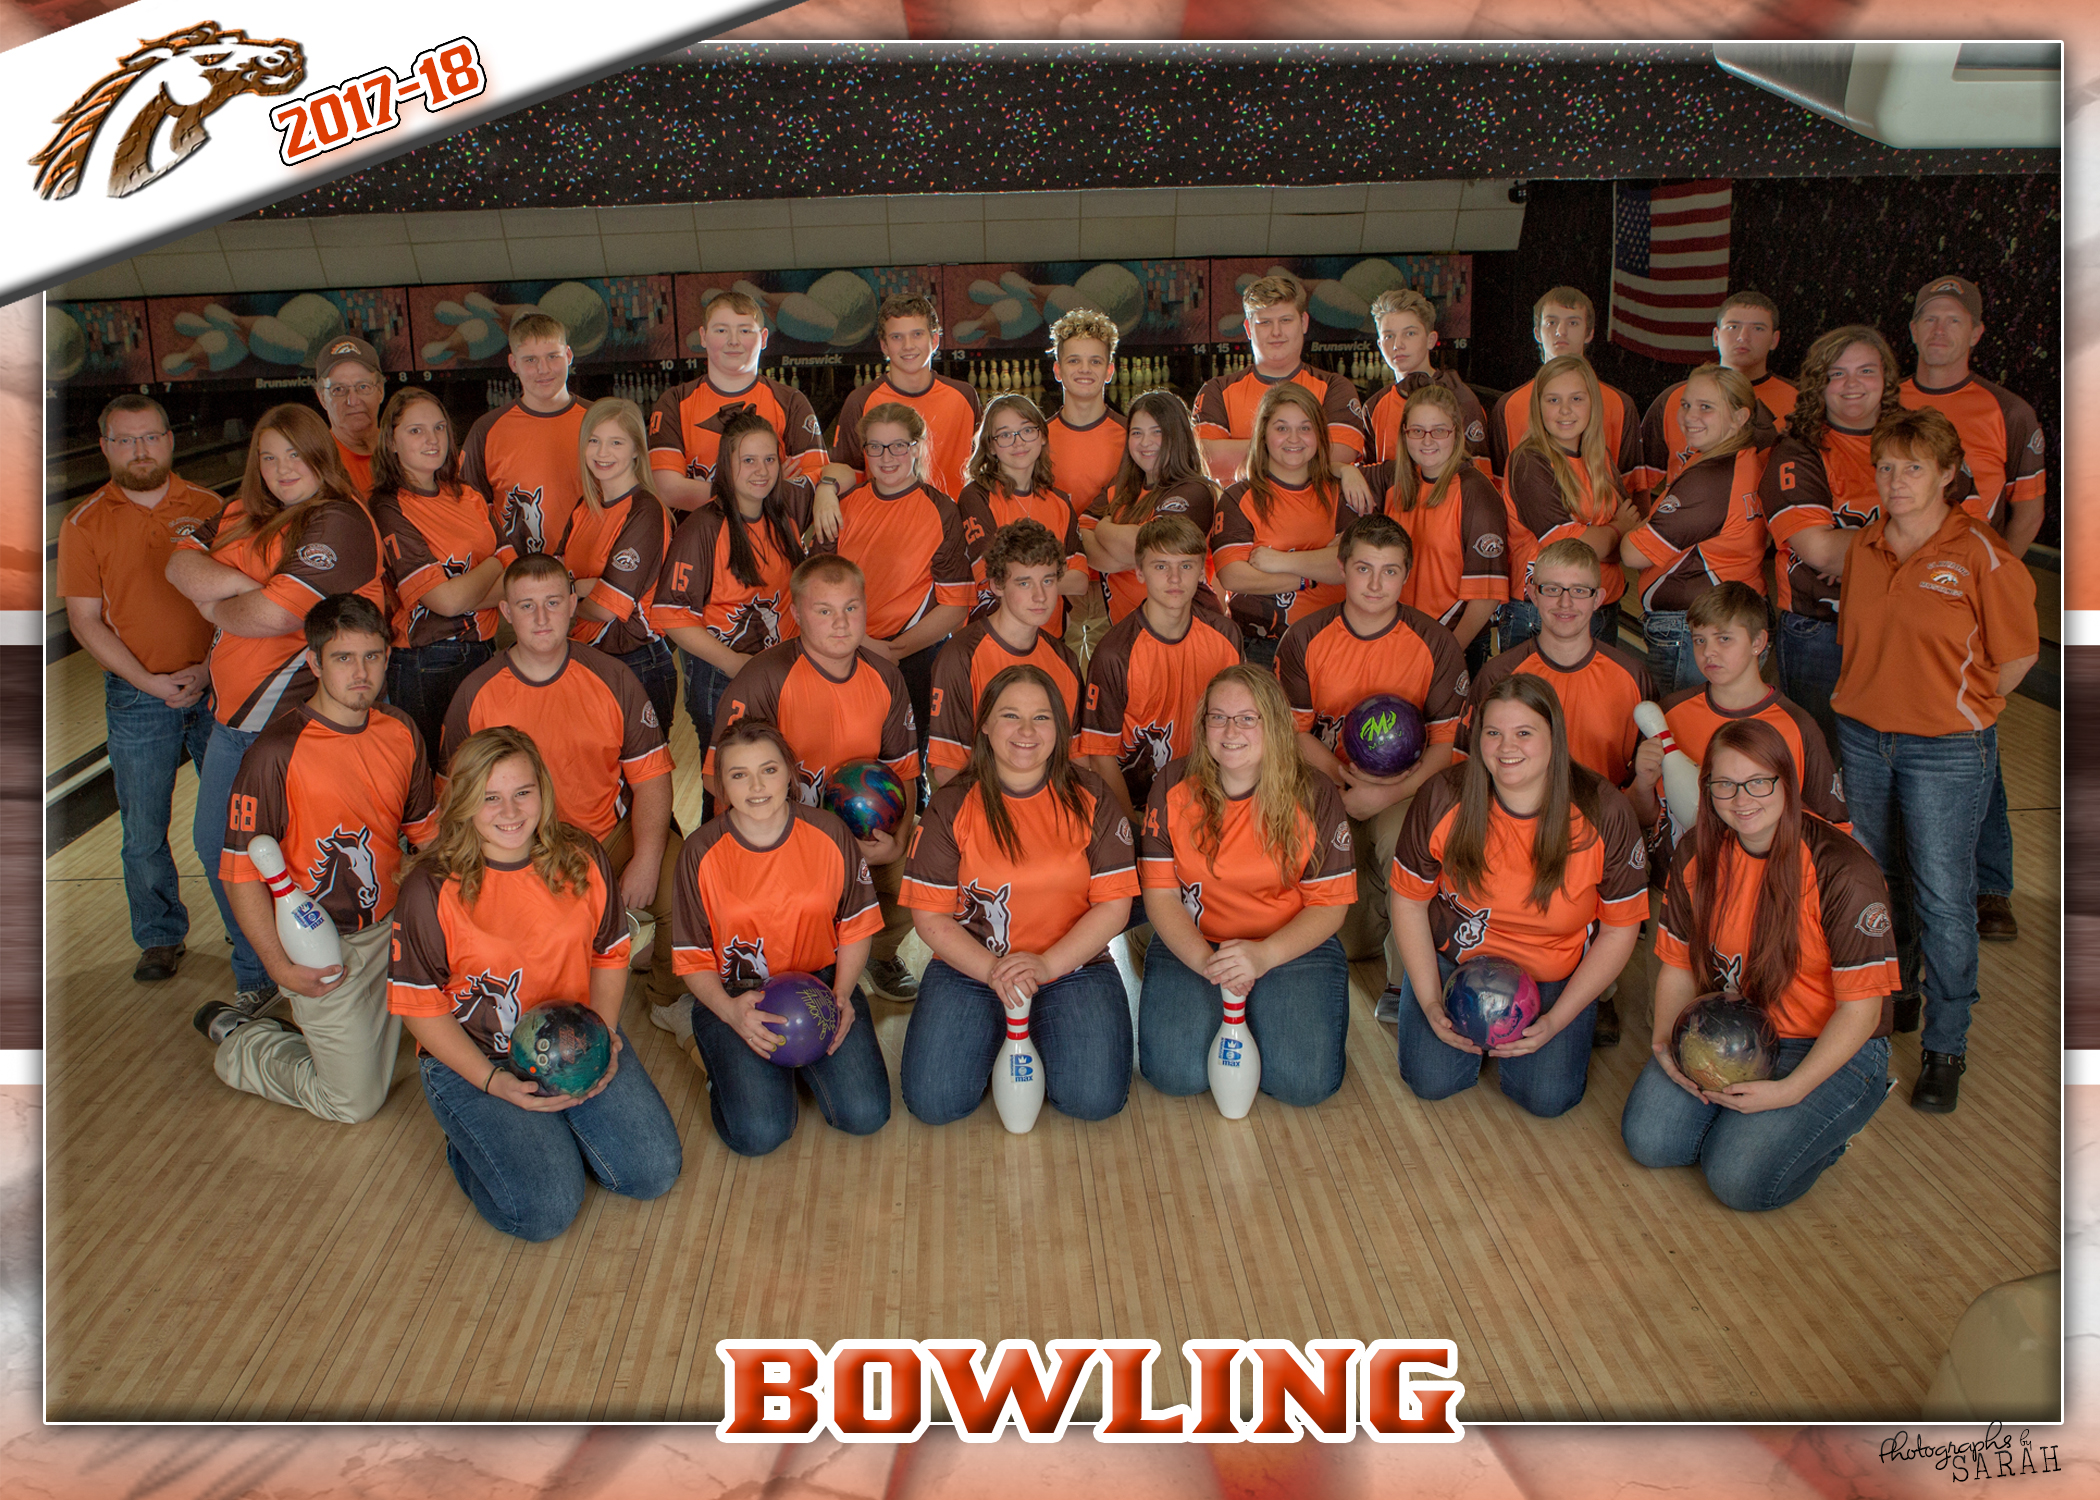 Congrats to the Girls Bowling Team